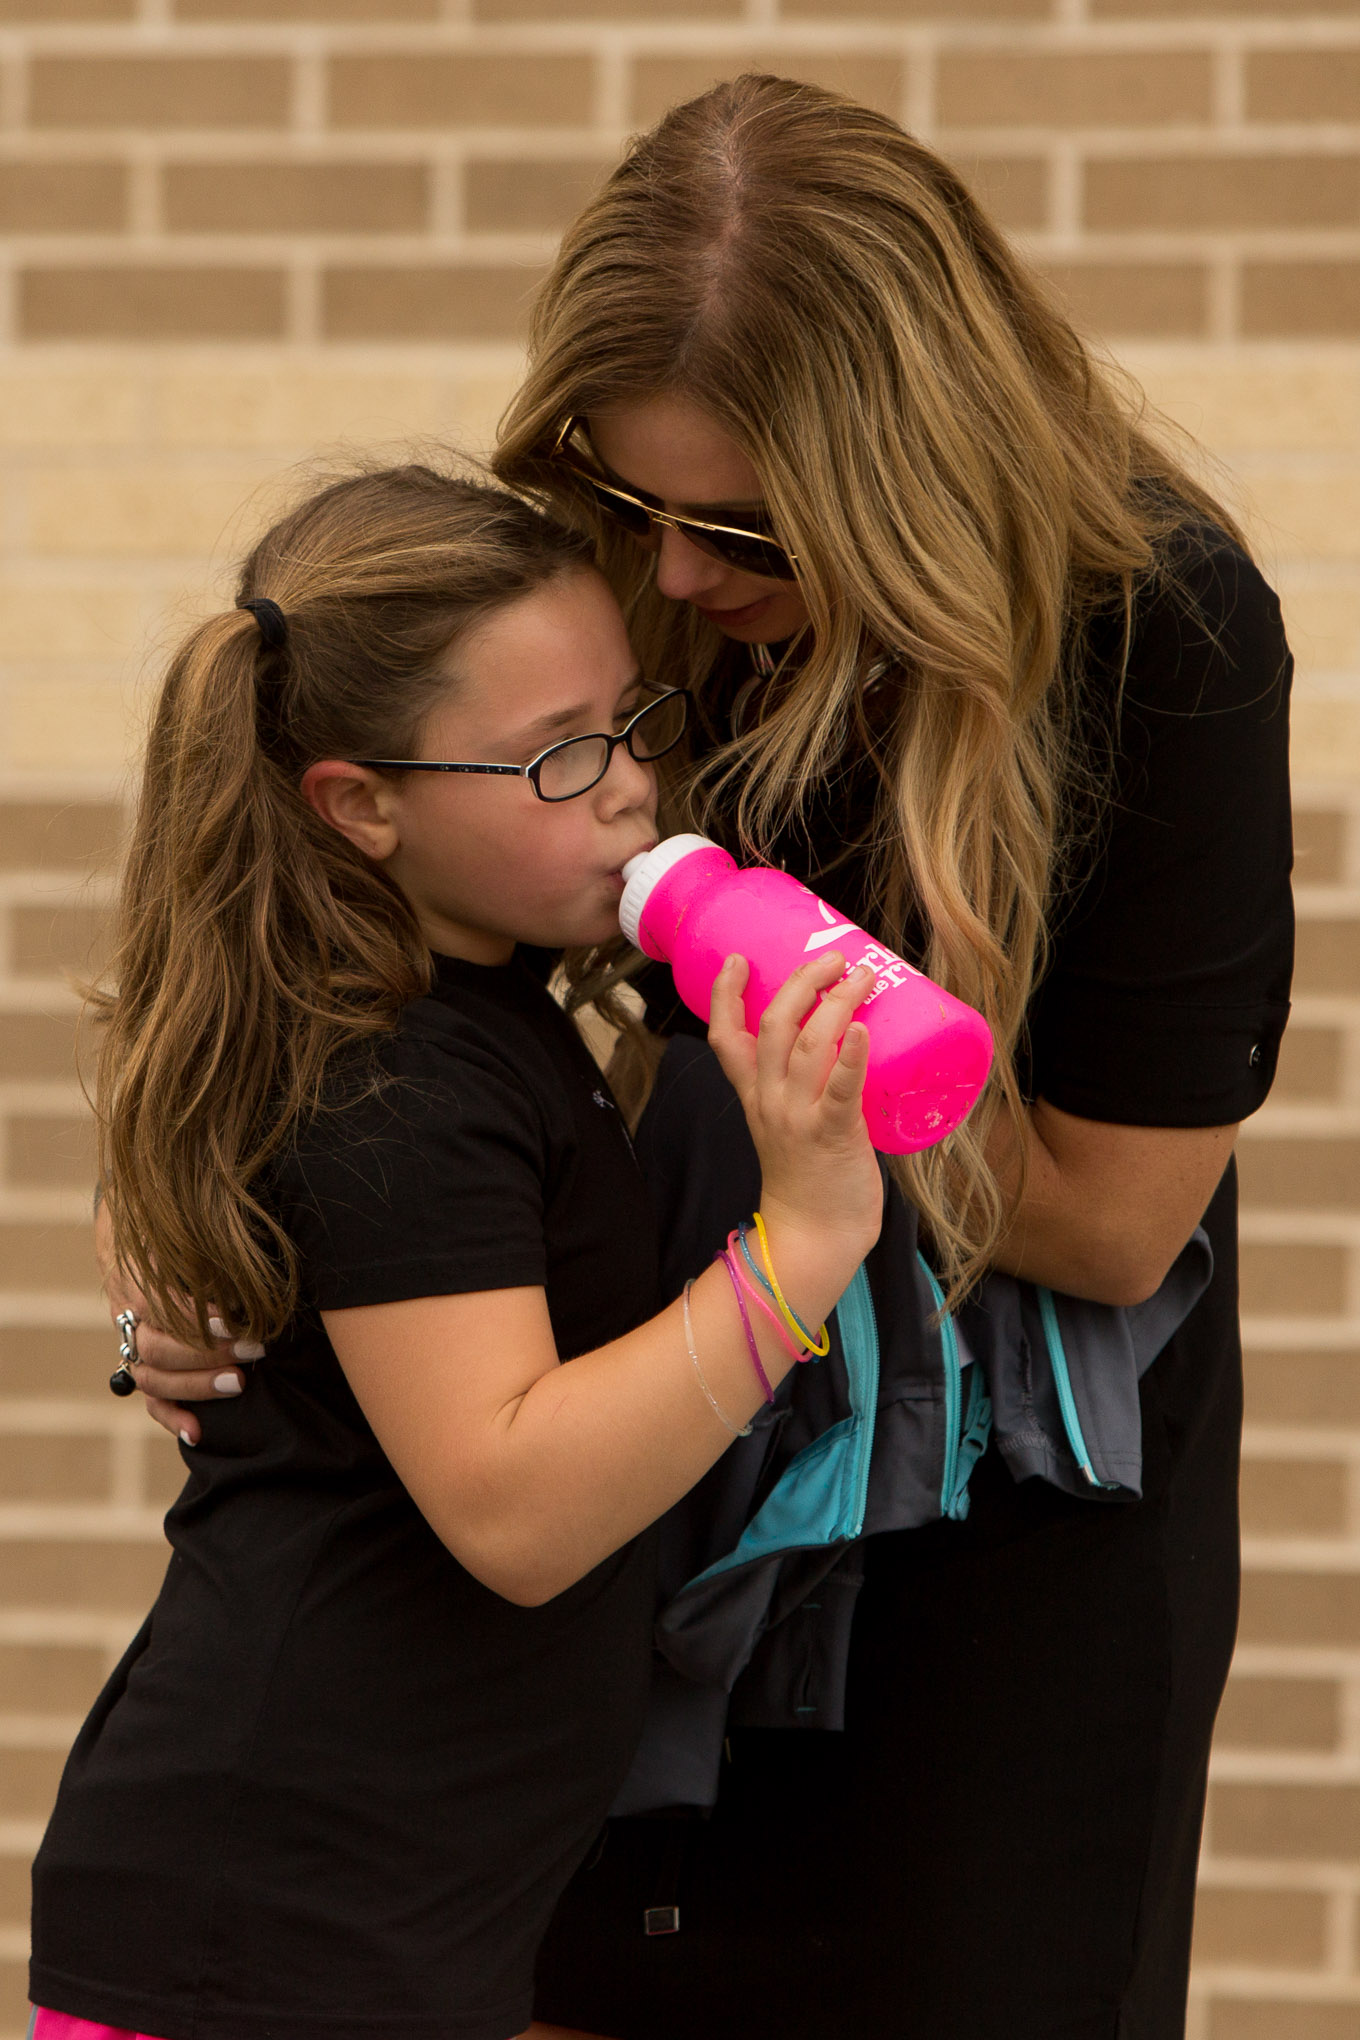 Ava and her mother Traci Lopez share a moment after Ava's run. Photo by Scott Ball.